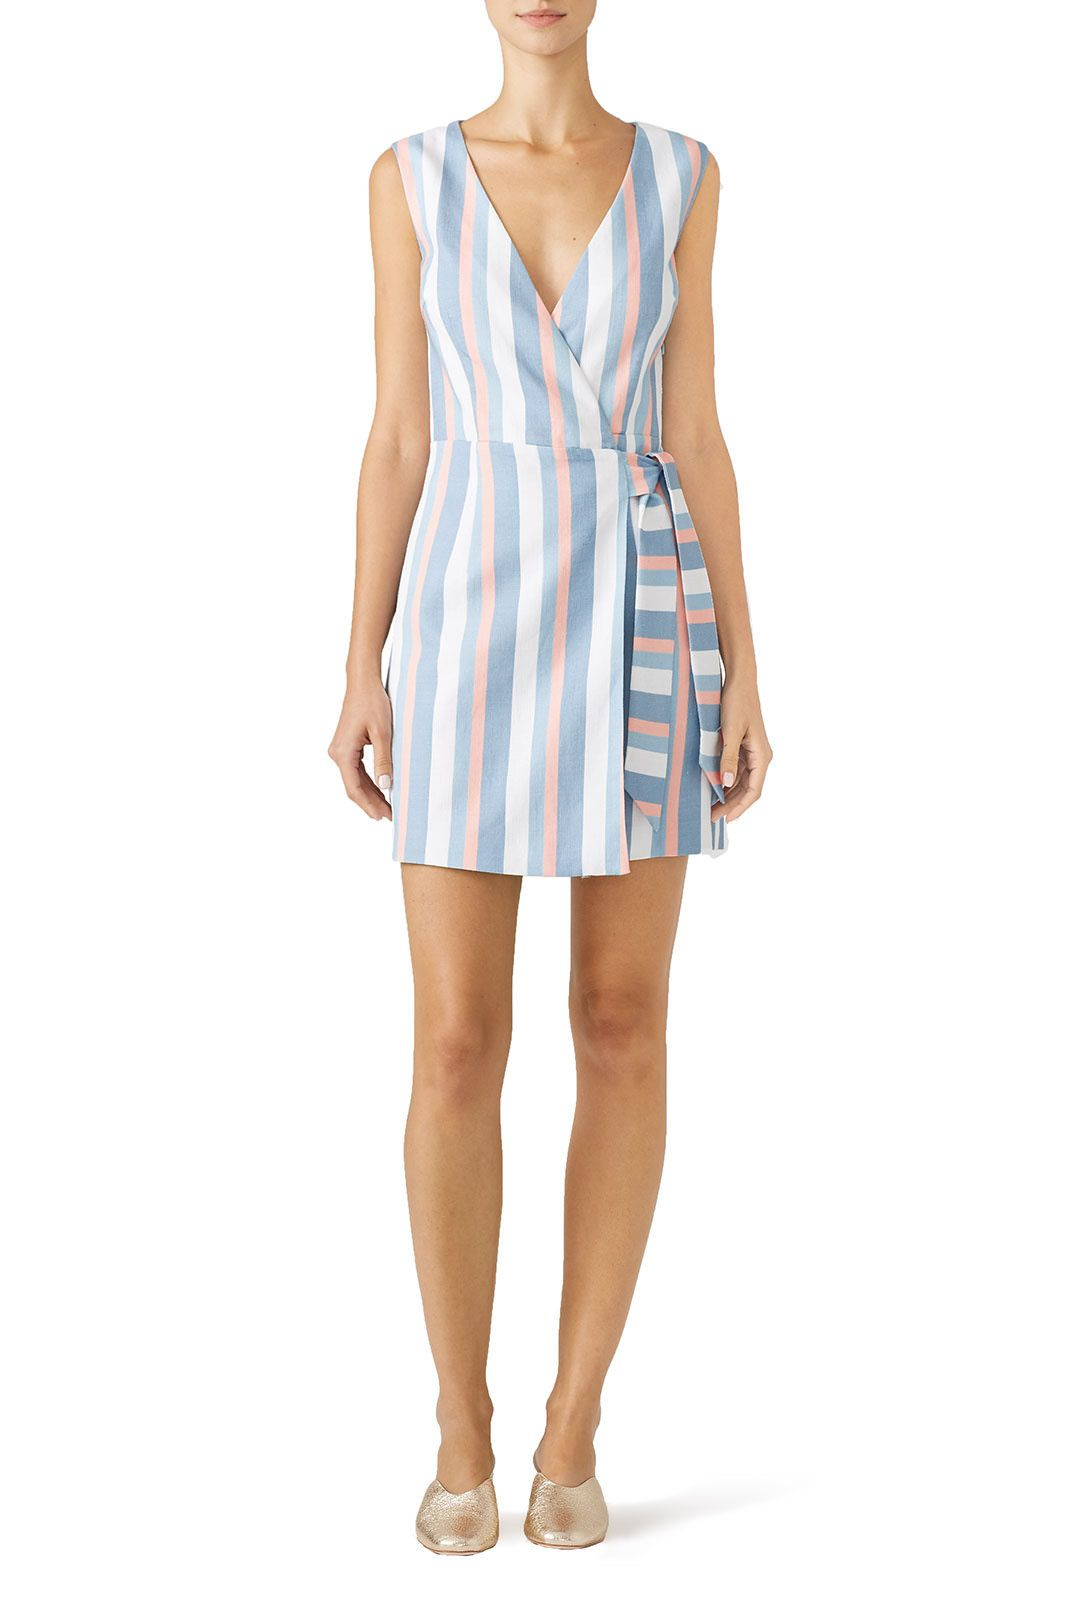 Rent Striped Instinct Wrap Dress By Finders Keepers For 30 Only At Rent The Runway Dresses Wrap Dress Clothes [ 1620 x 1080 Pixel ]